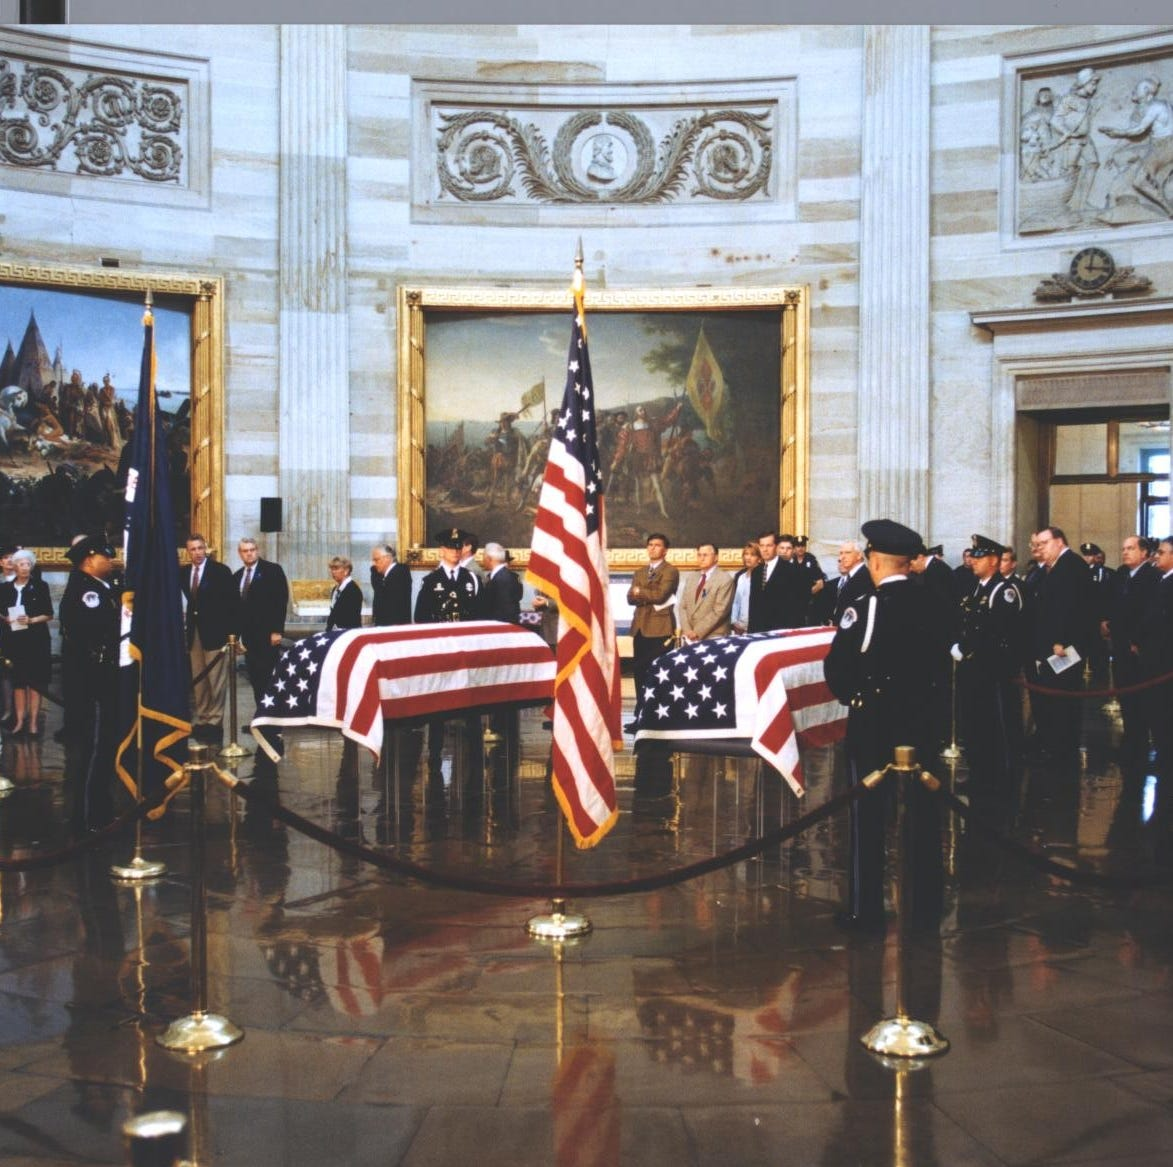 It is 20 years since the US Capitol shooting. I still remember the kindness of the officer who died.